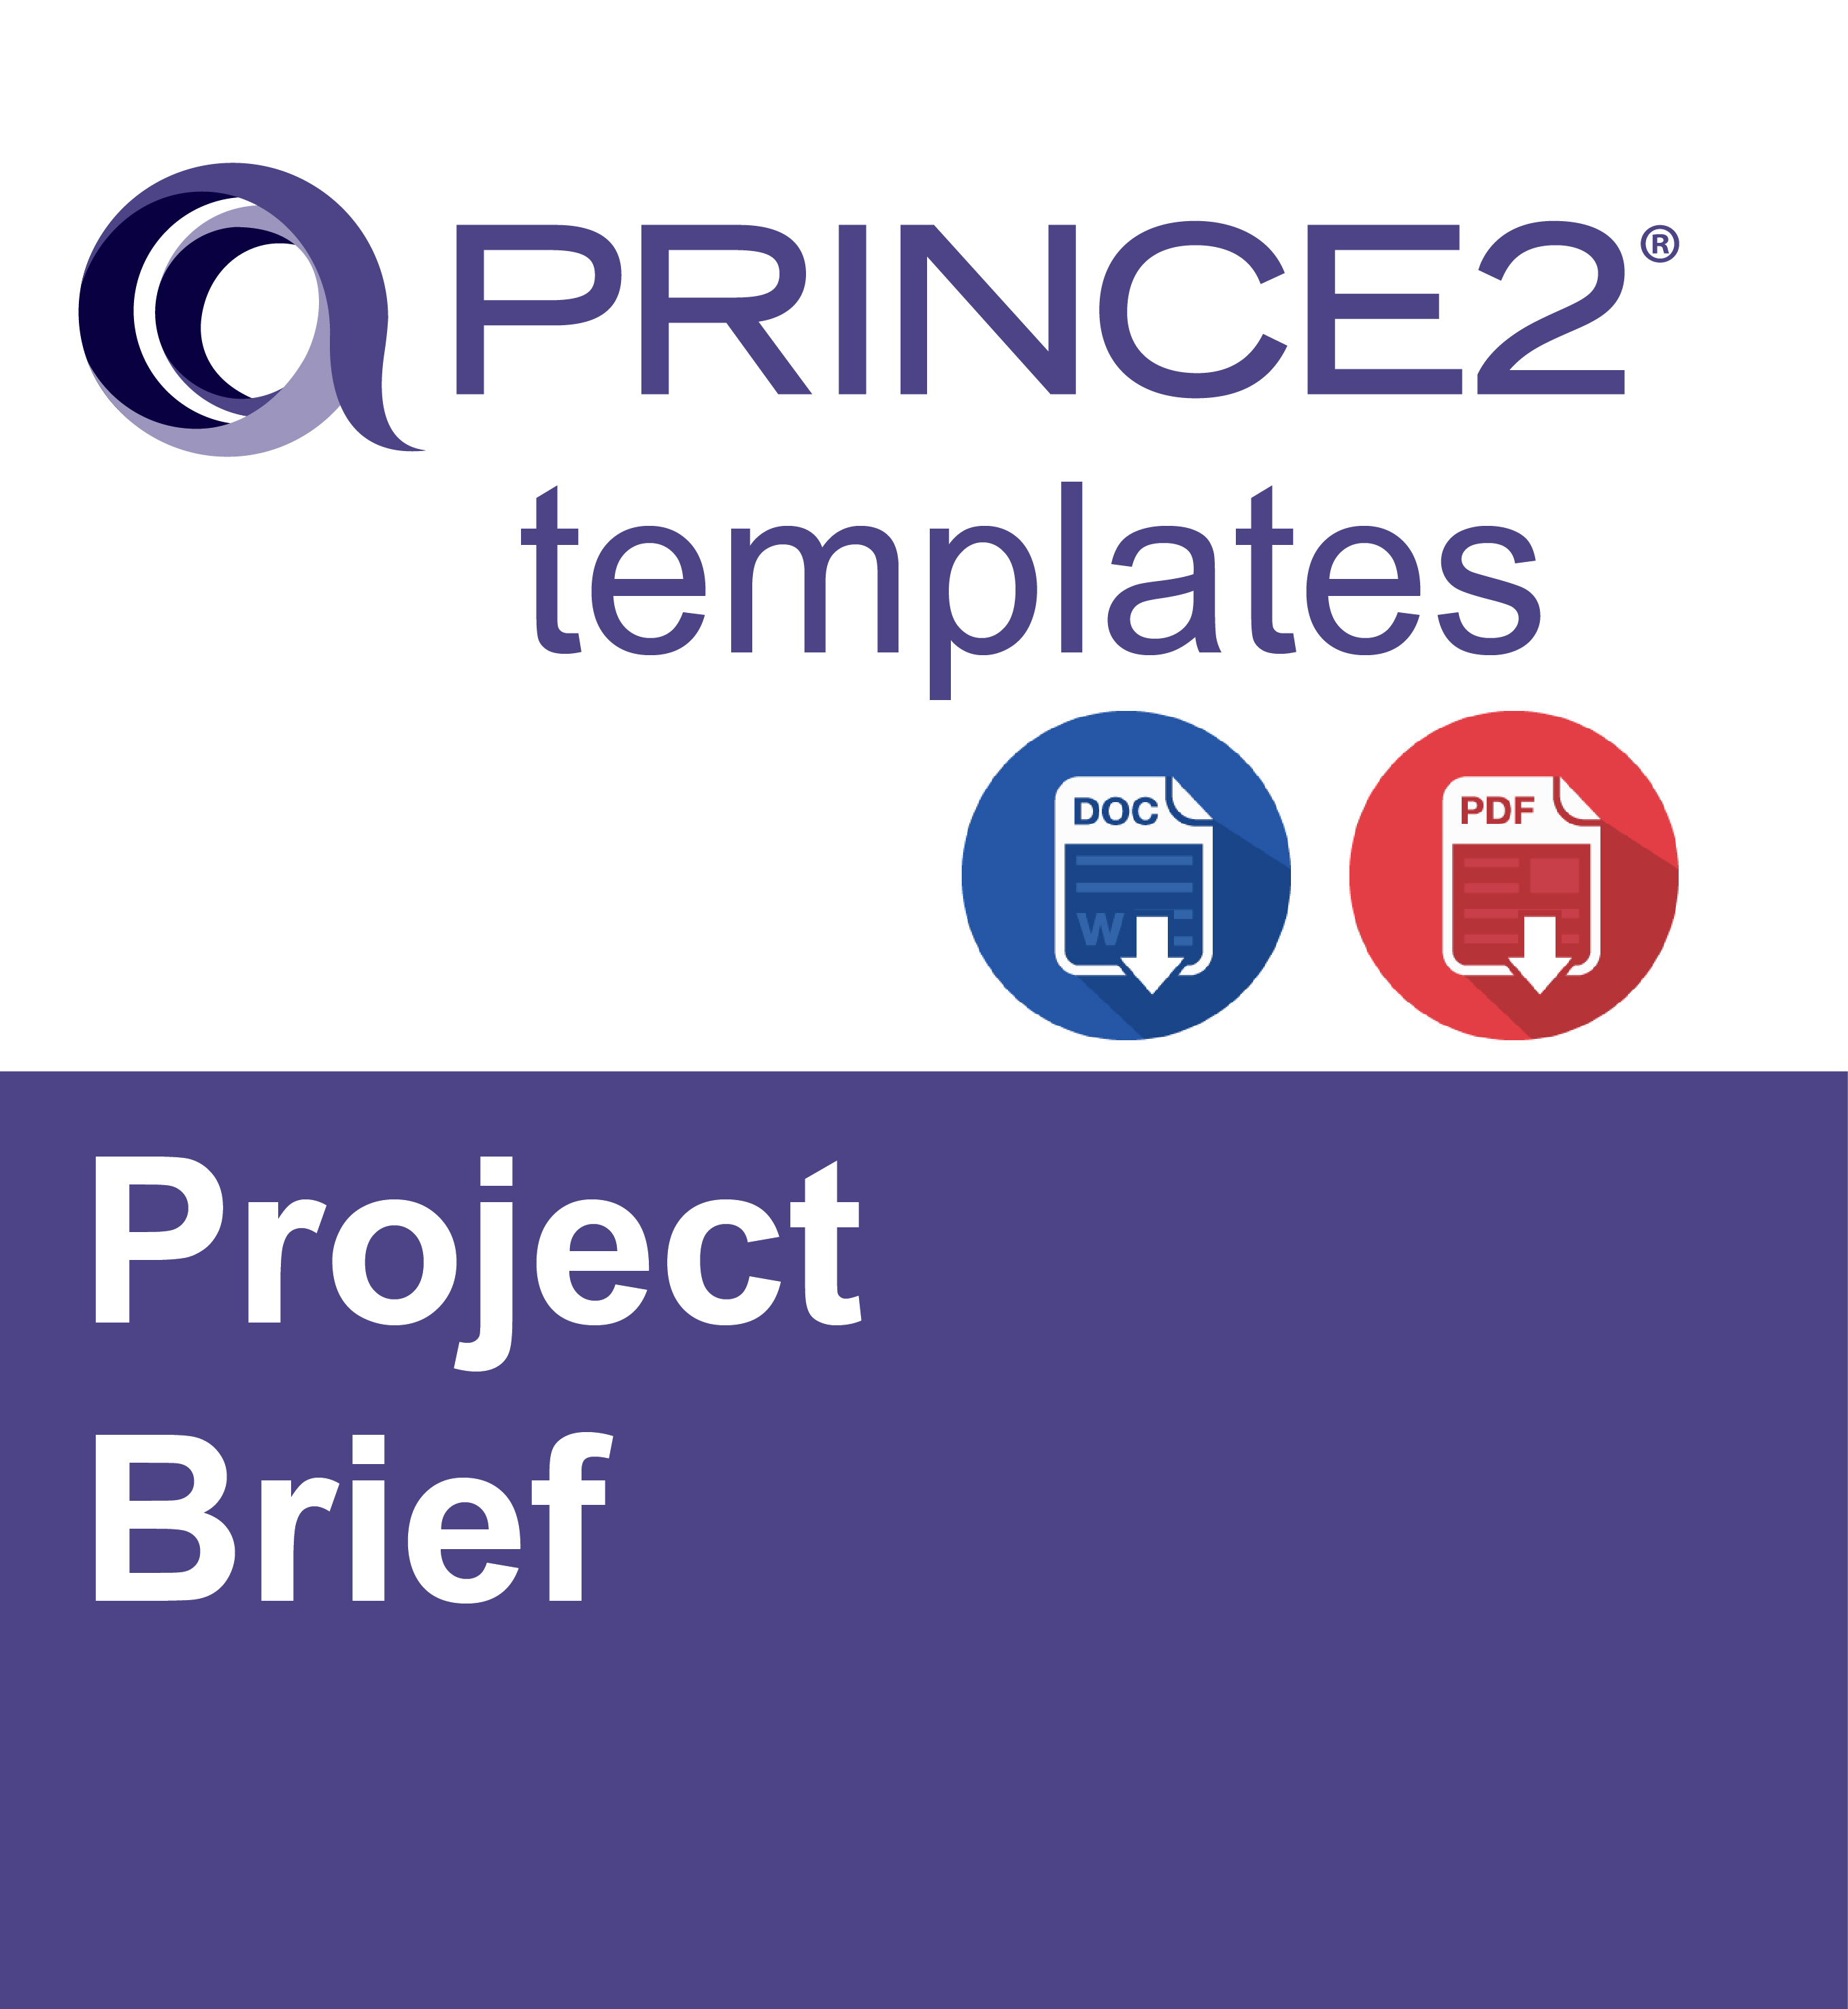 Prince2 project brief ebalance for Prince2 project plan template free